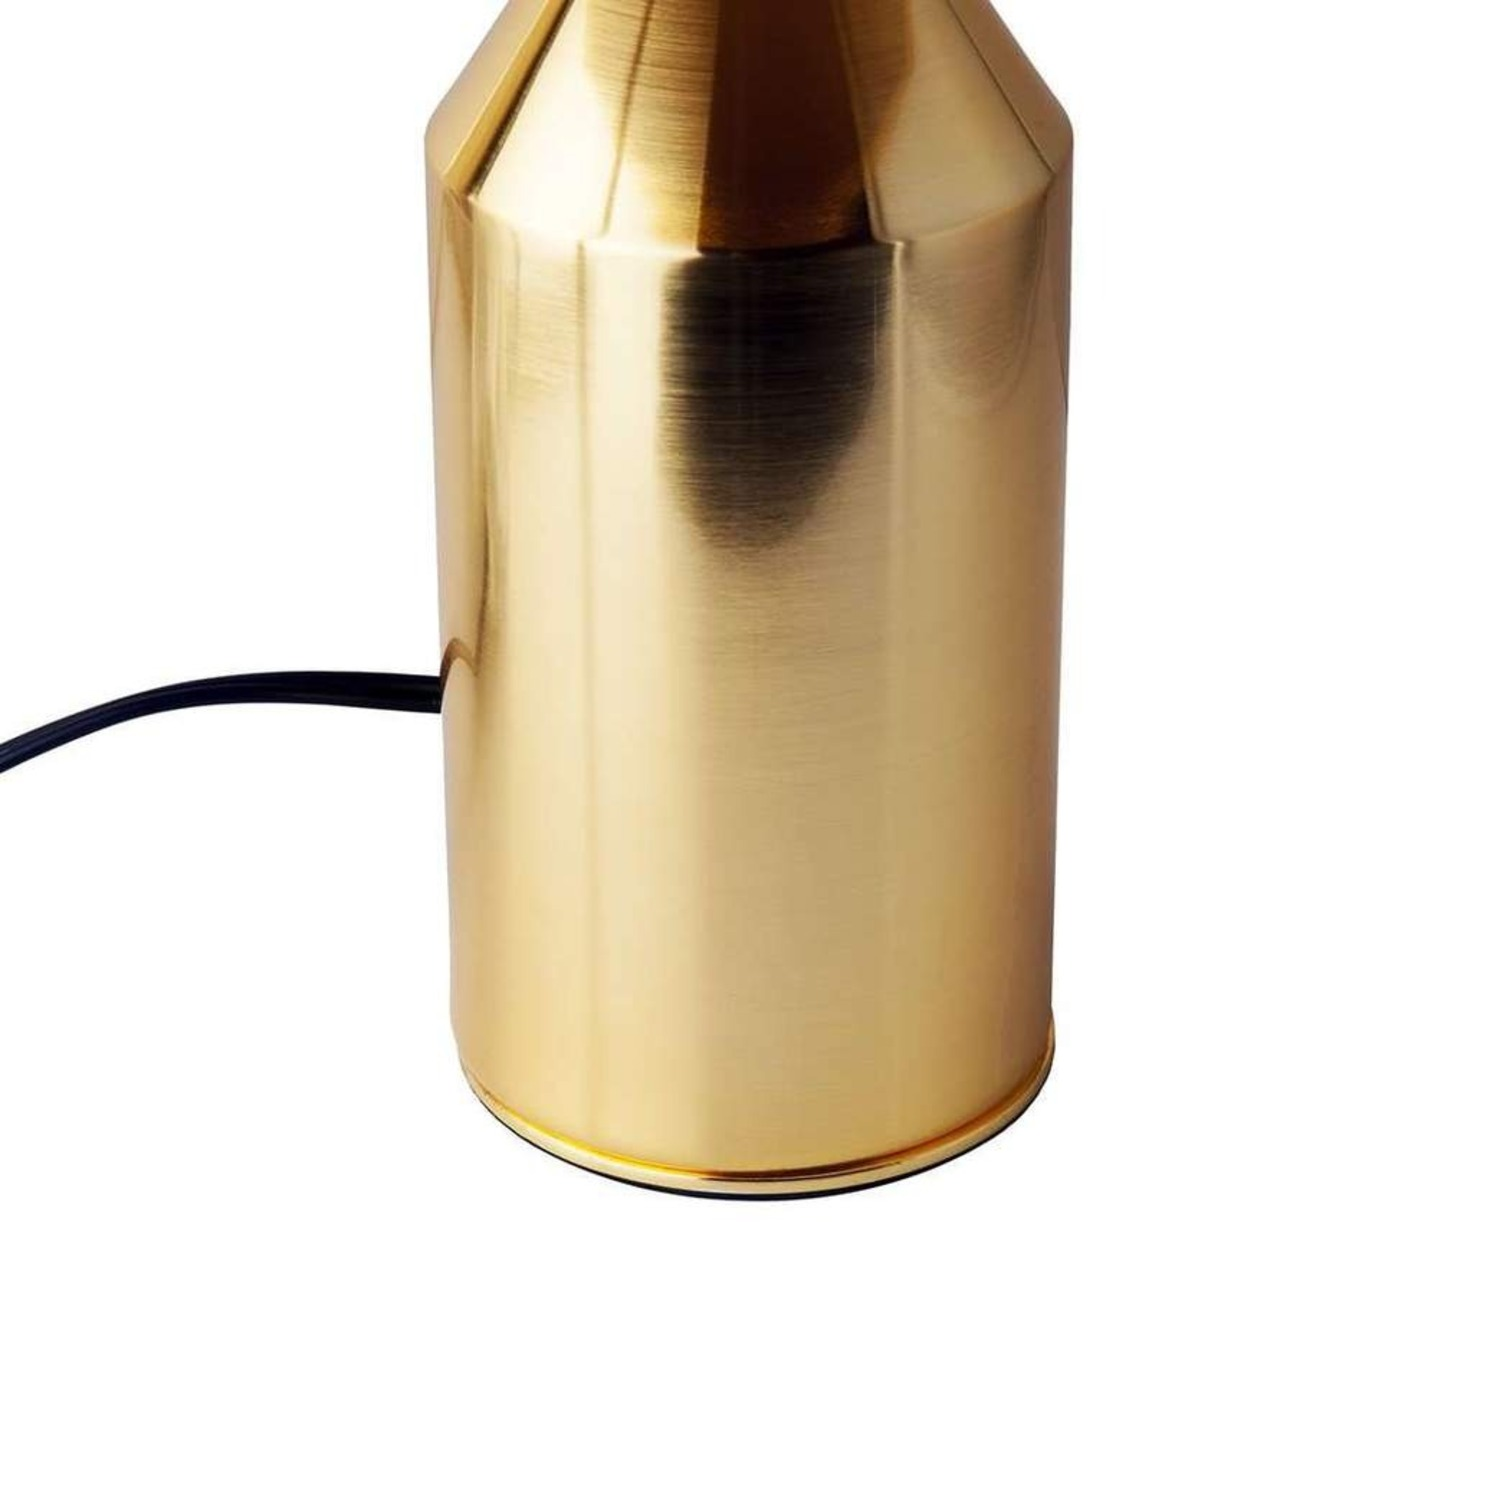 France and Son Vico Magistretti Inspired Lamp - image-2